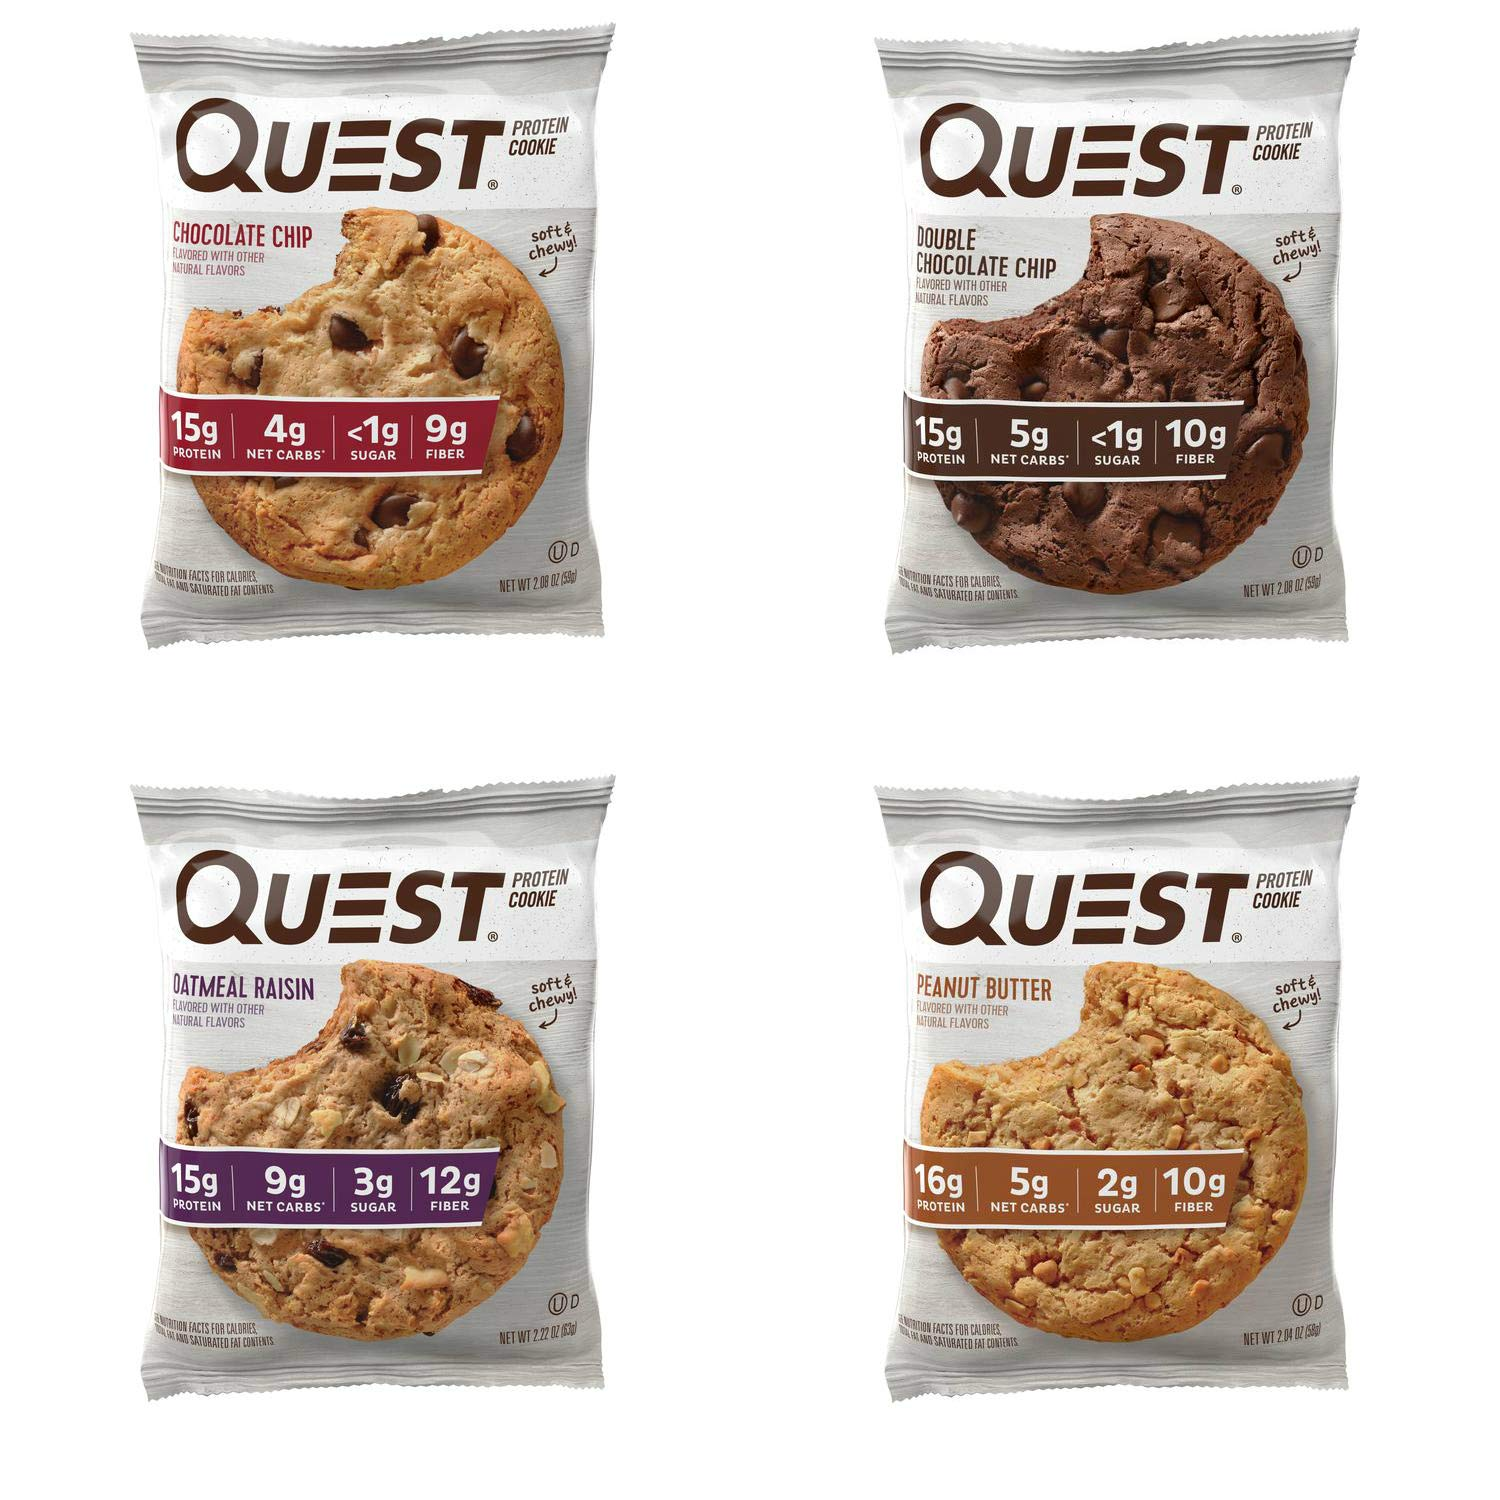 Quest Nutrition - Protein Cookie Variety Pack - Oatmeal Raisin, Double Chocolate, Peanut Butter and Chocolate Chip (12 Count)